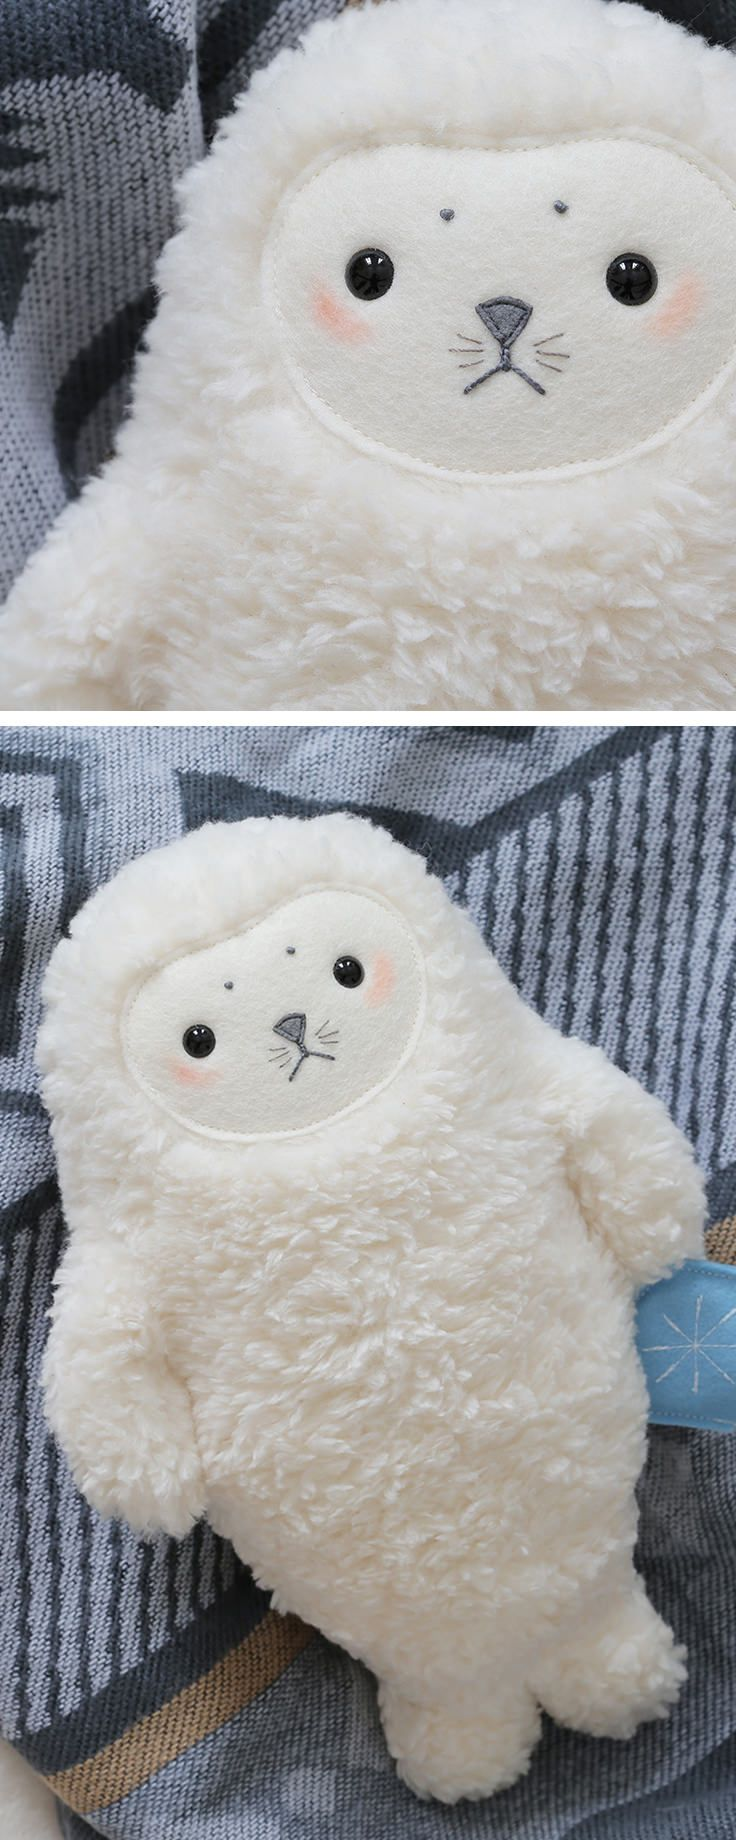 Was schenkt man Kindern: Wie wär's mit der weichen Kuscheltier Robbe unter dem #weihnachtsbaum / soft toy seal as #christmasgift for kids made by Petit Panda  via DaWanda.com